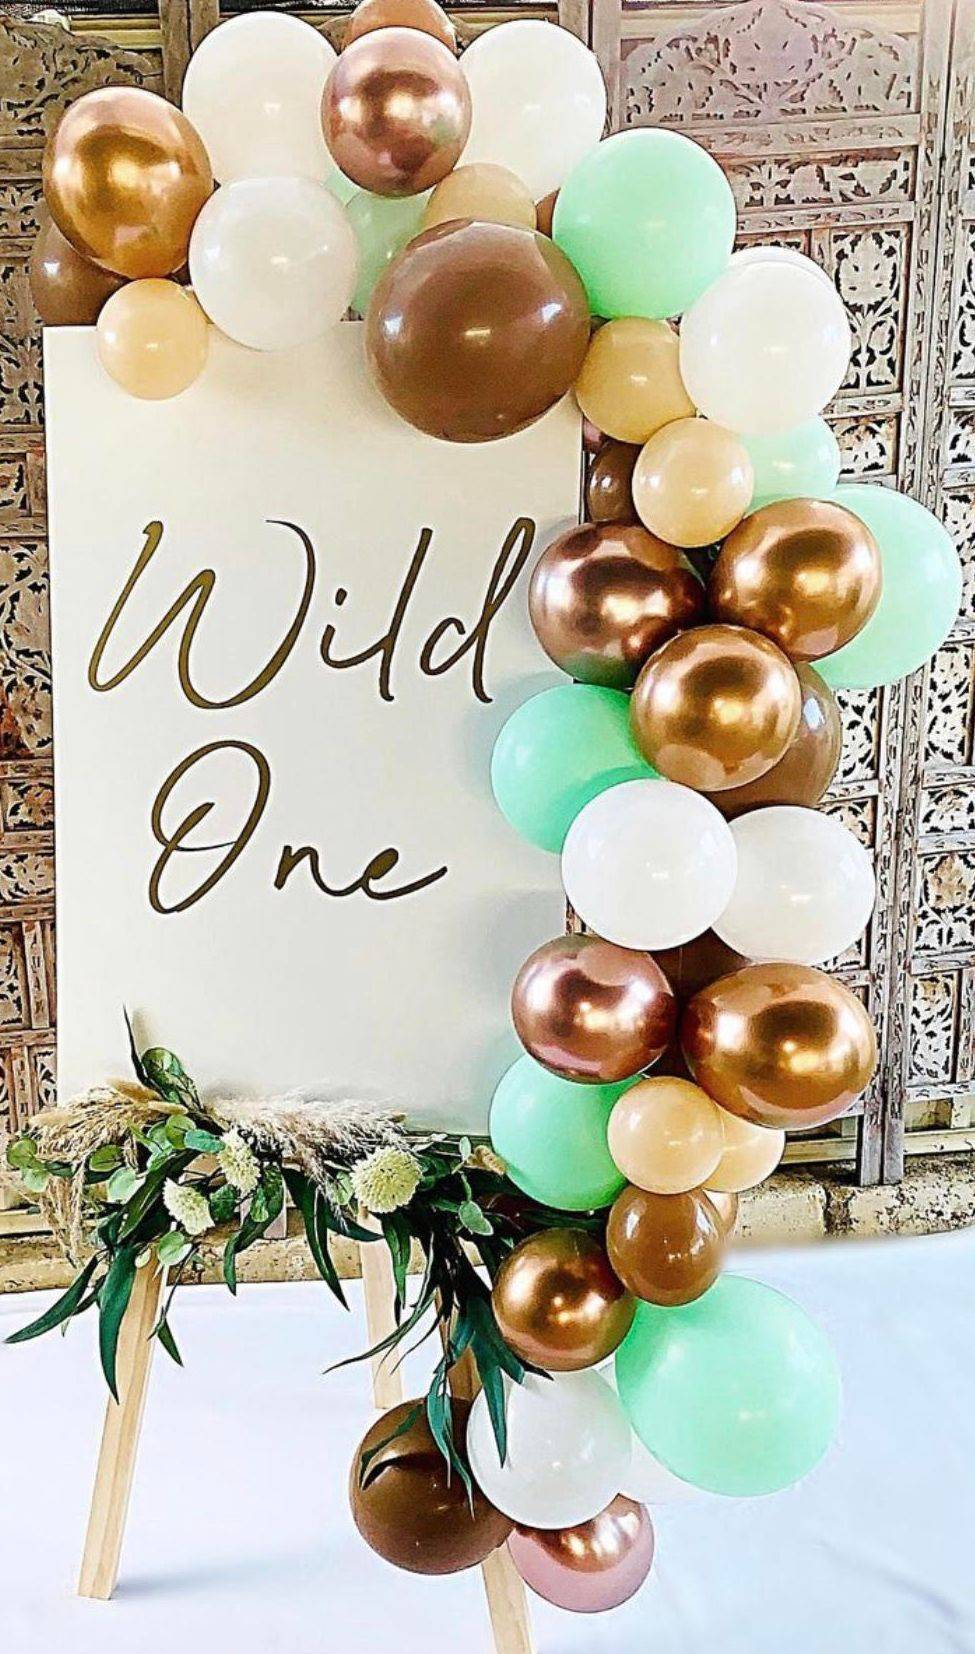 Wild One Sign on Easel